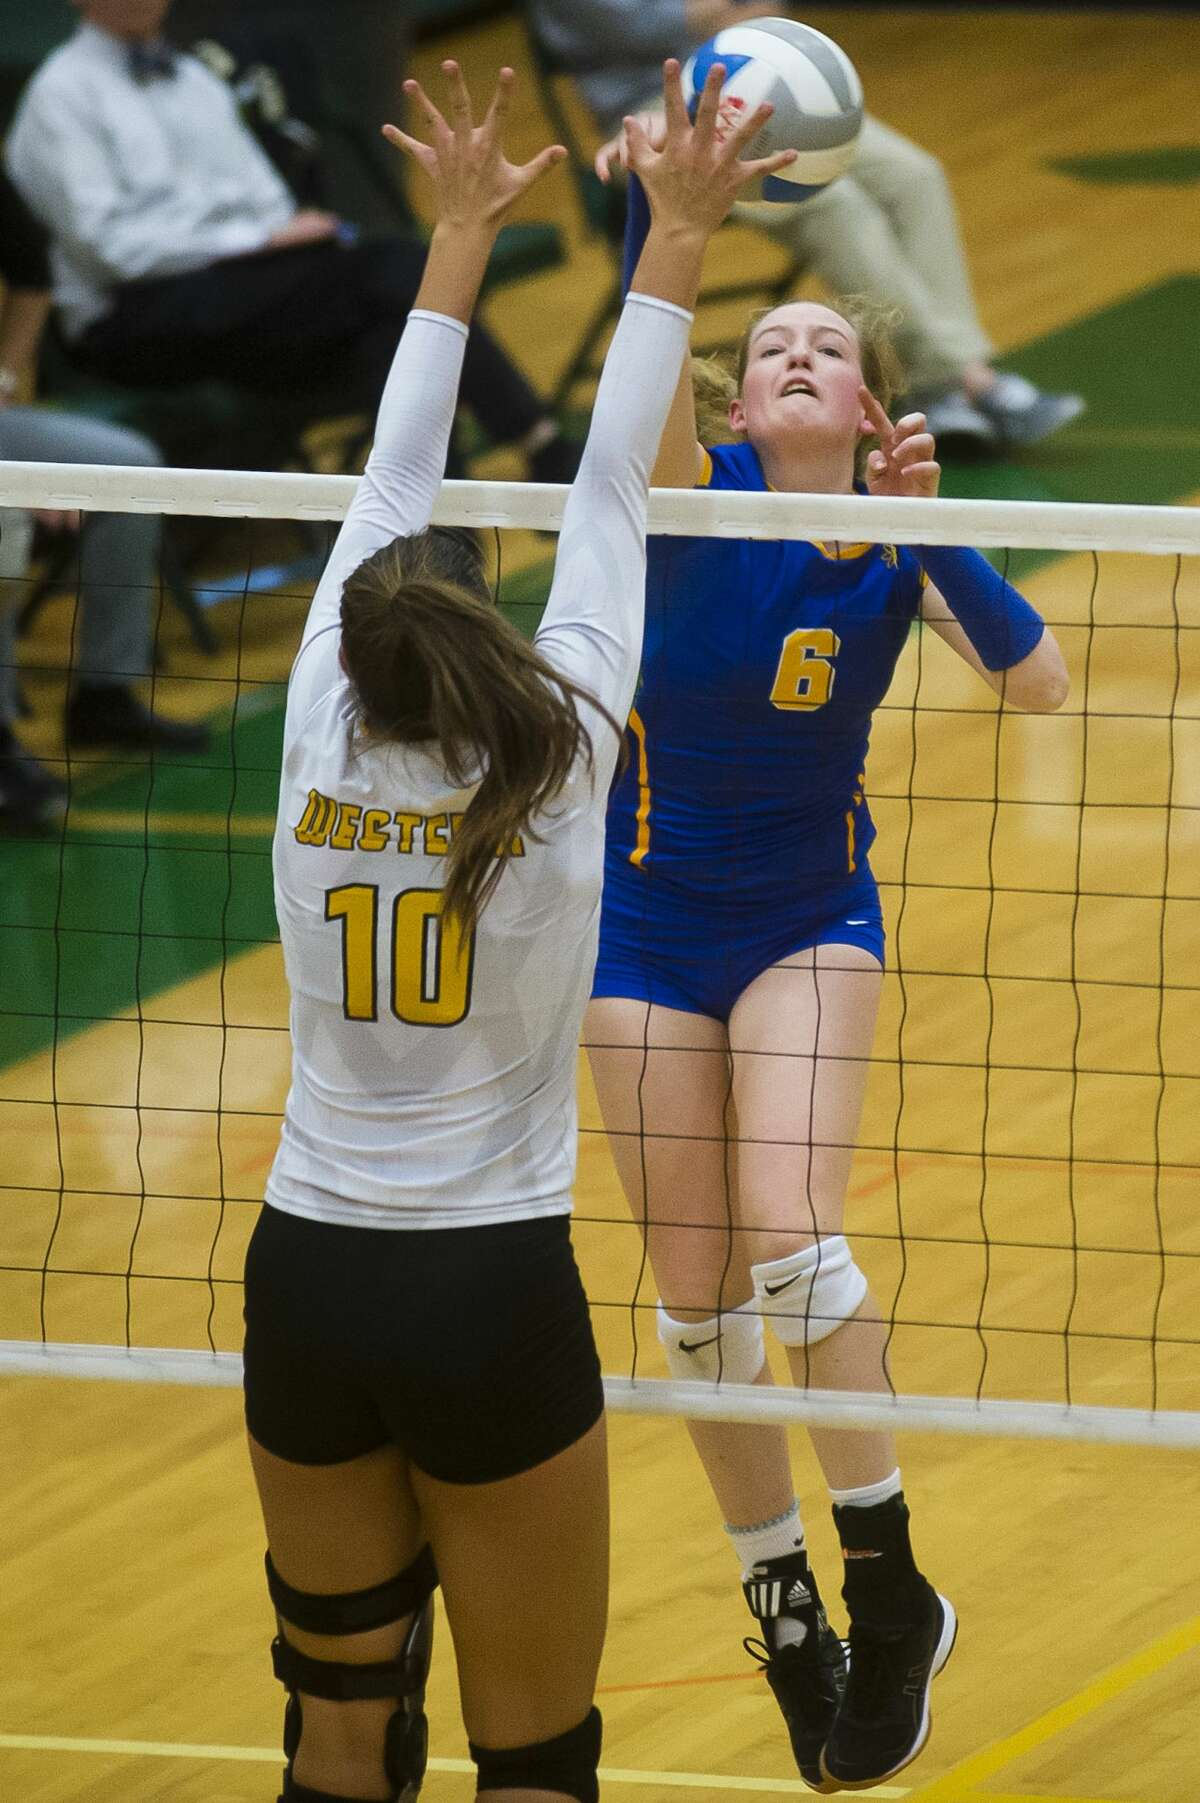 Midland junior Katherine Perry spikes the ball as Bay City Western senior Addison Bouza tries to block her during their Class A district final on Thursday, Nov. 2, 2017 at H. H. Dow High School. (Katy Kildee/kkildee@mdn.net)